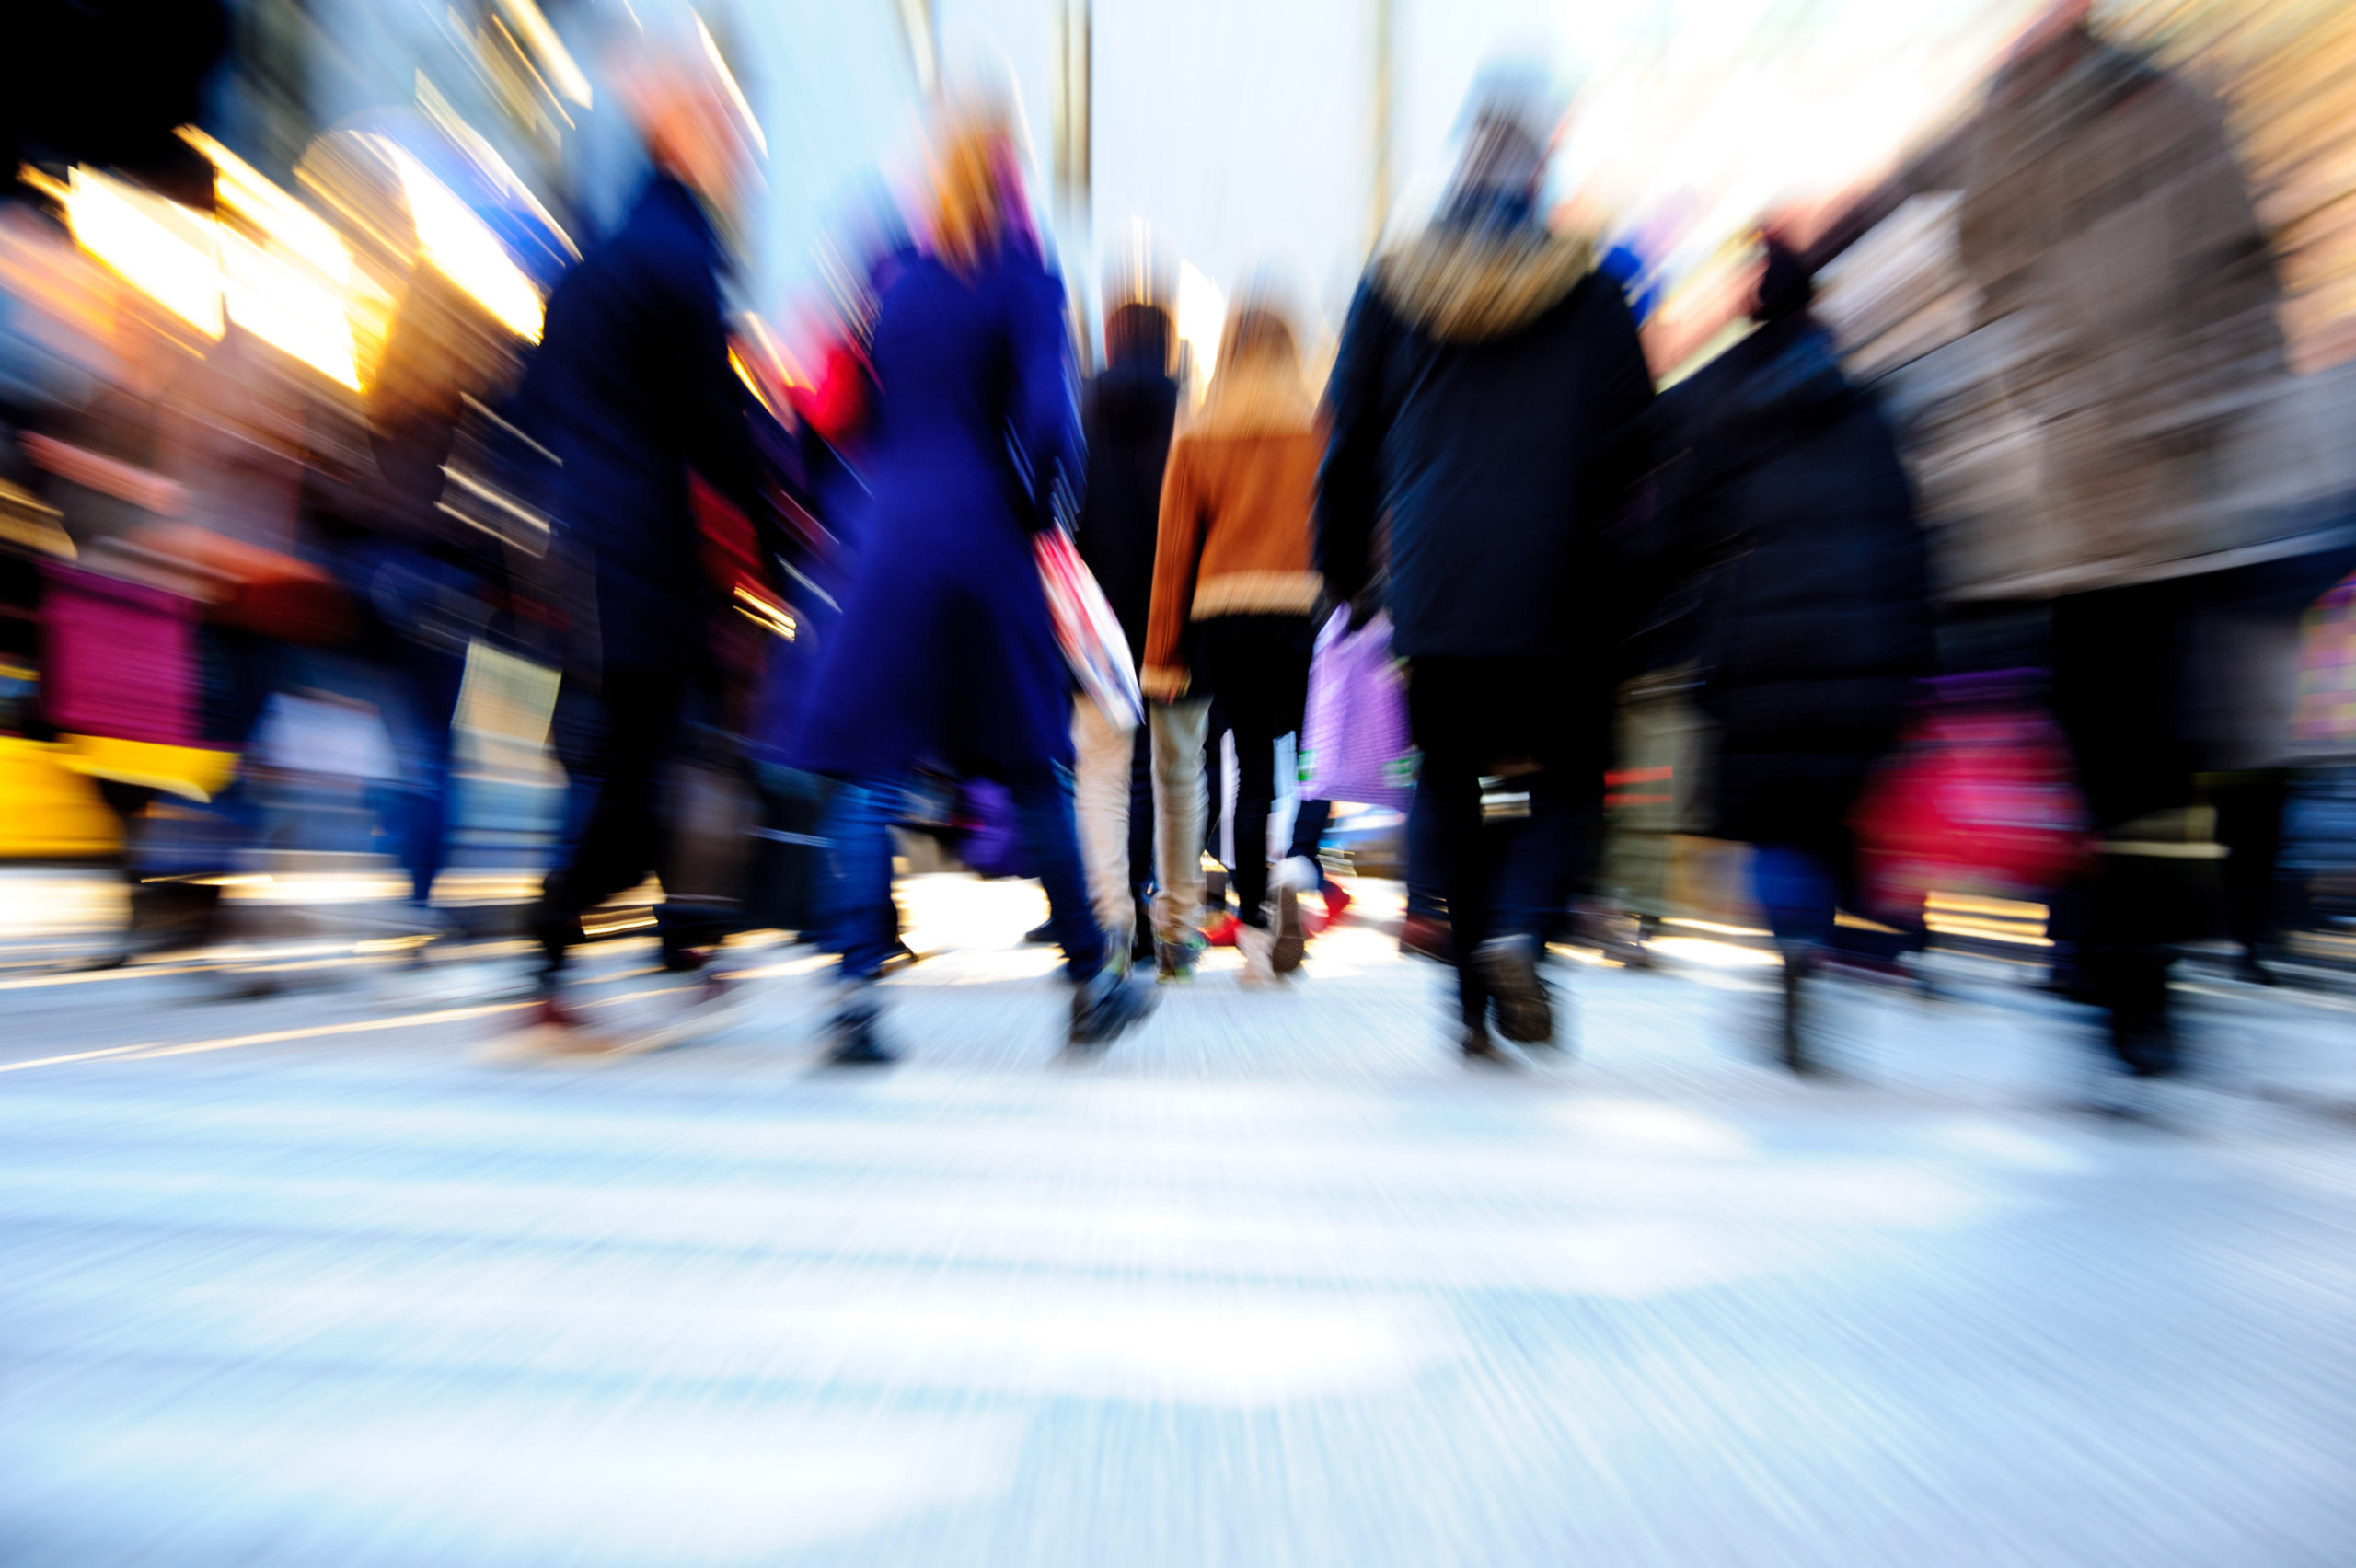 productivity and walking speeds